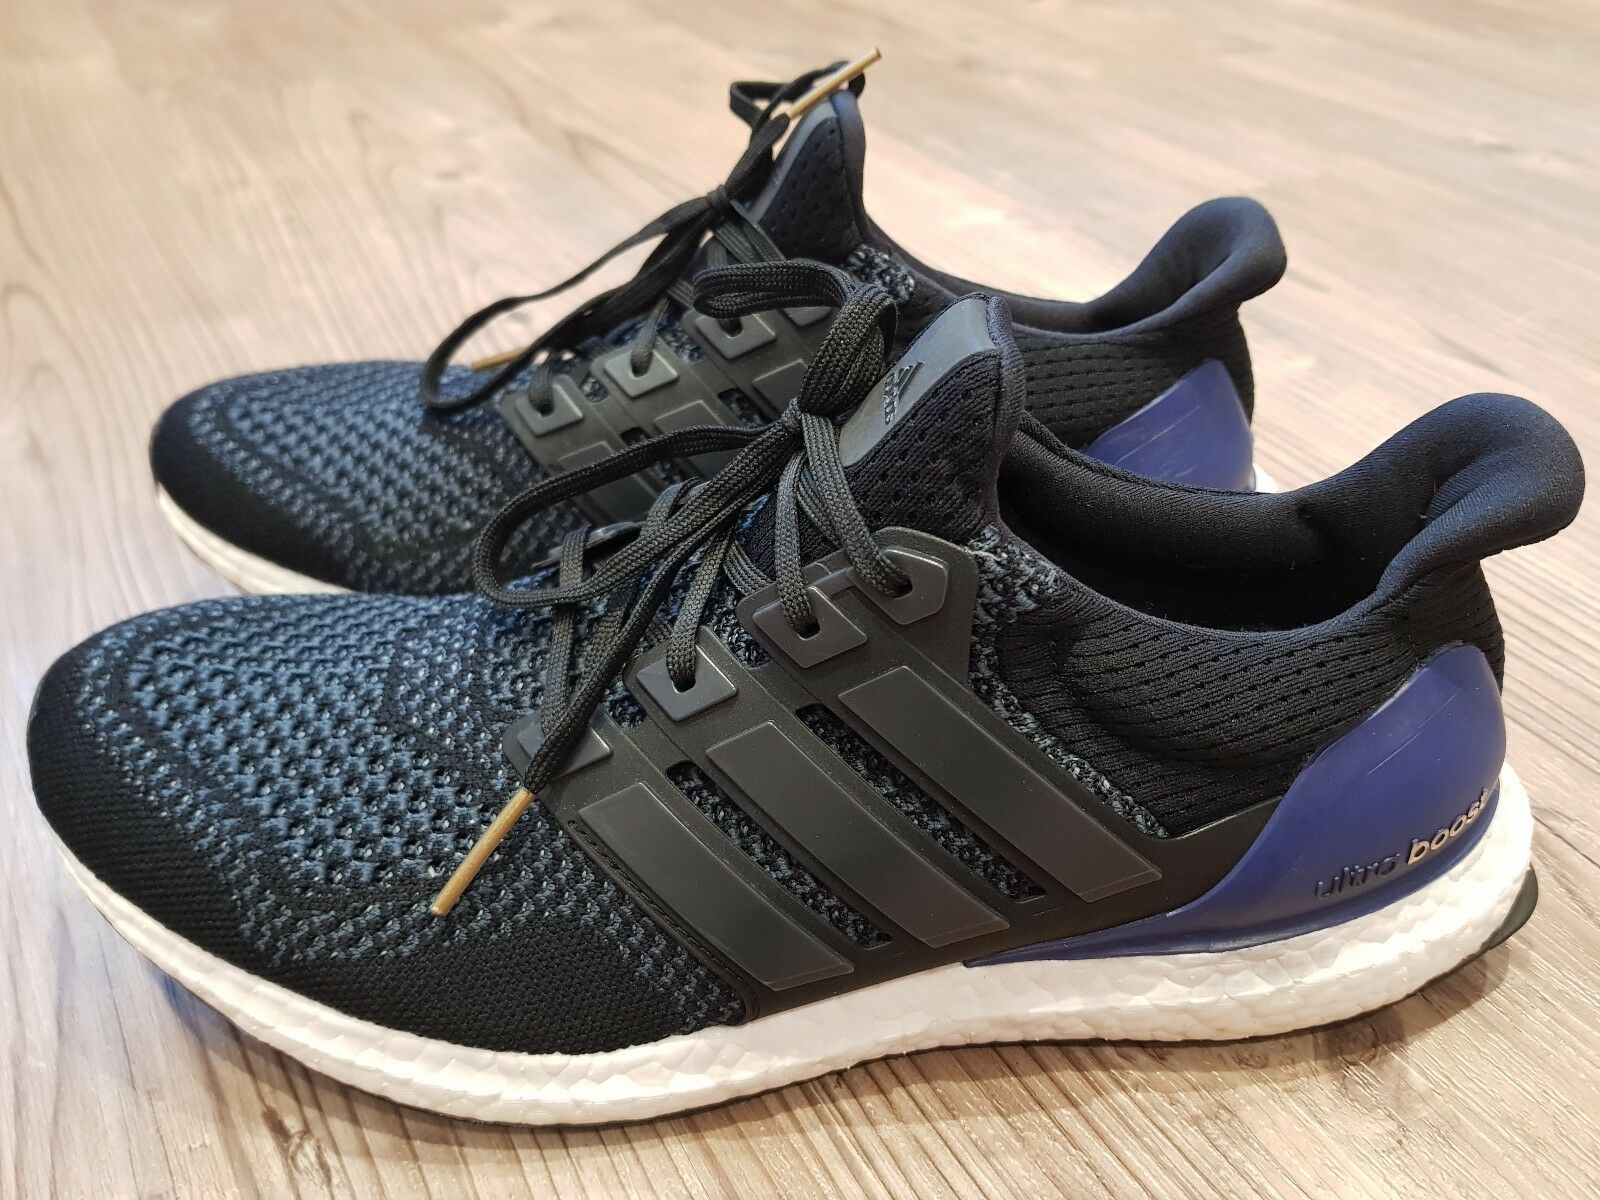 Adidas Ultra Boost Trainers in a UK size 9.5 used no box purple 1.0 og original